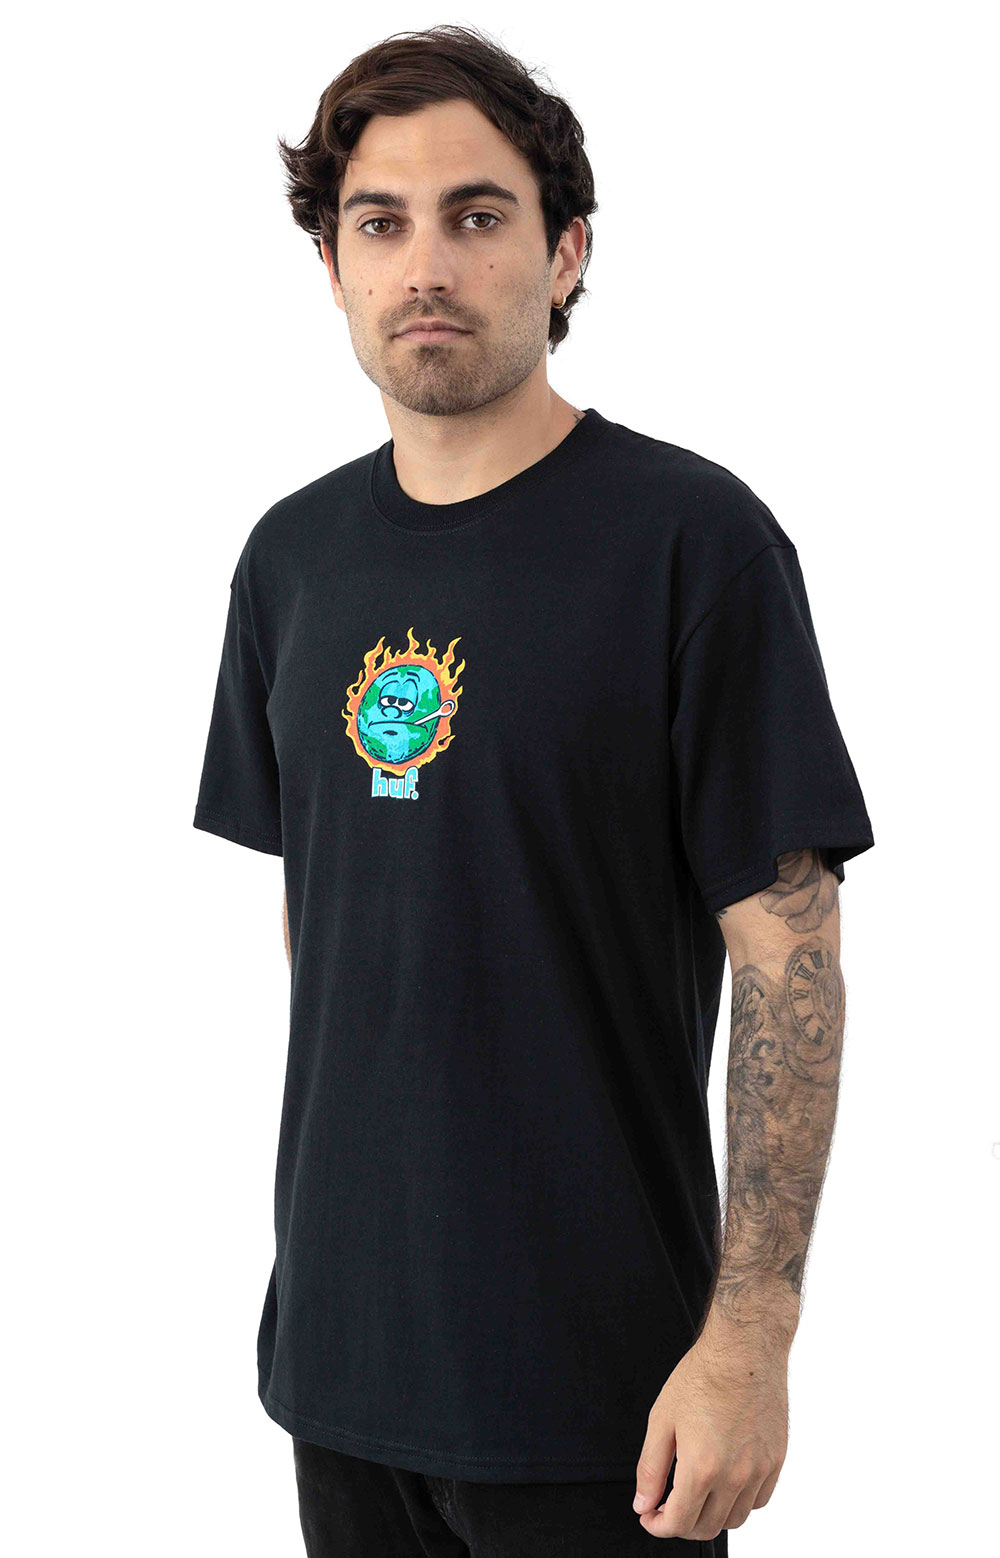 Sick Sad World T-Shirt - Black